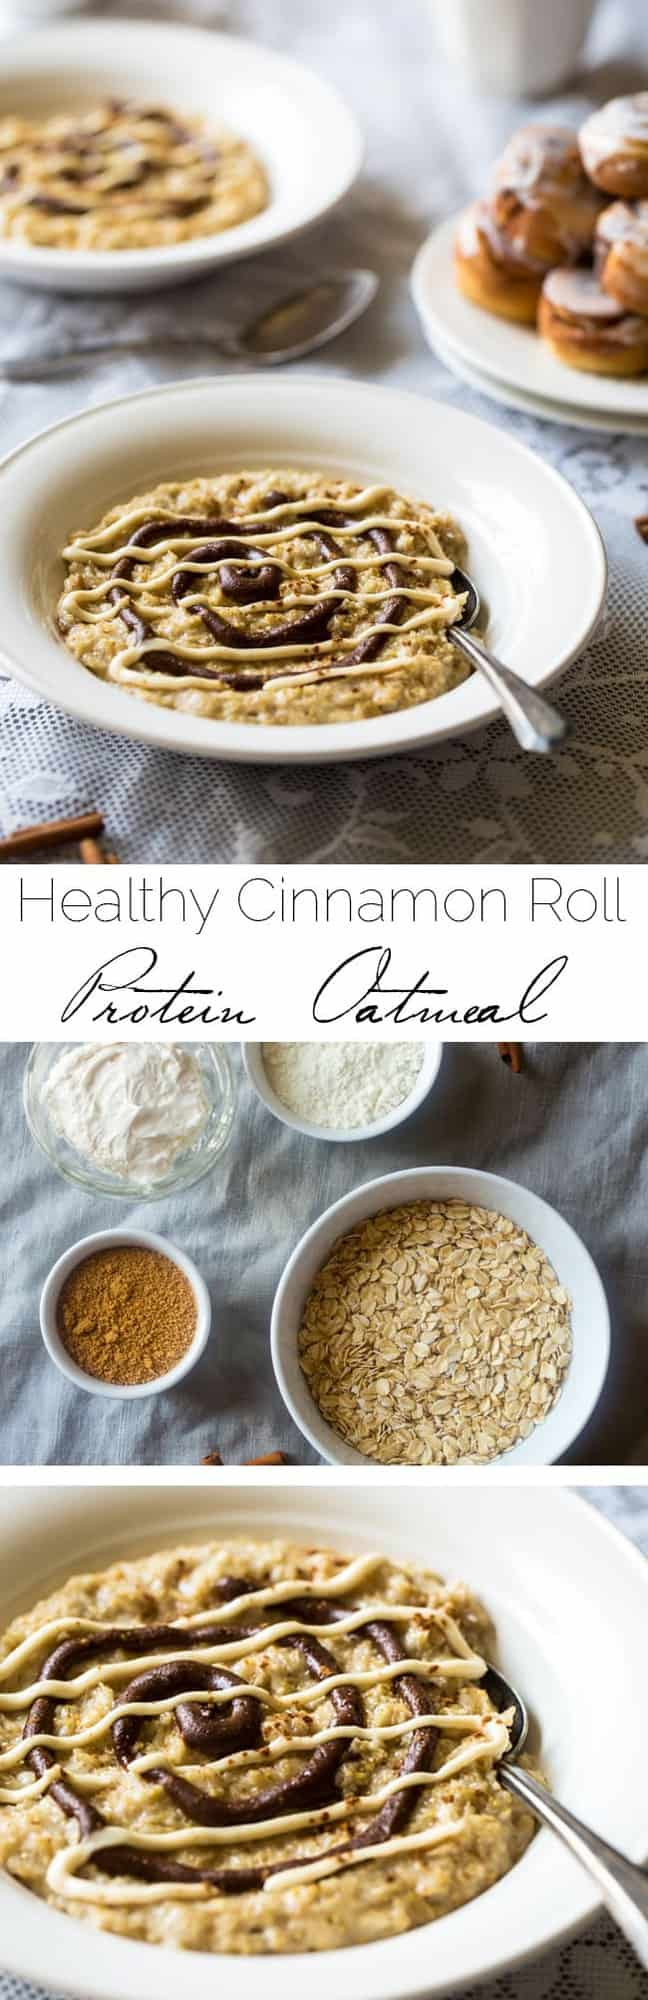 Healthy Cinnamon Roll Protein Oatmeal - This tastes EXACLTY like a cinnamon roll except it's SO quick, gluten free, protein packed and naturally sweetened. You NEED to try this! | Foodfaithfitness.com | @FoodFaithFit